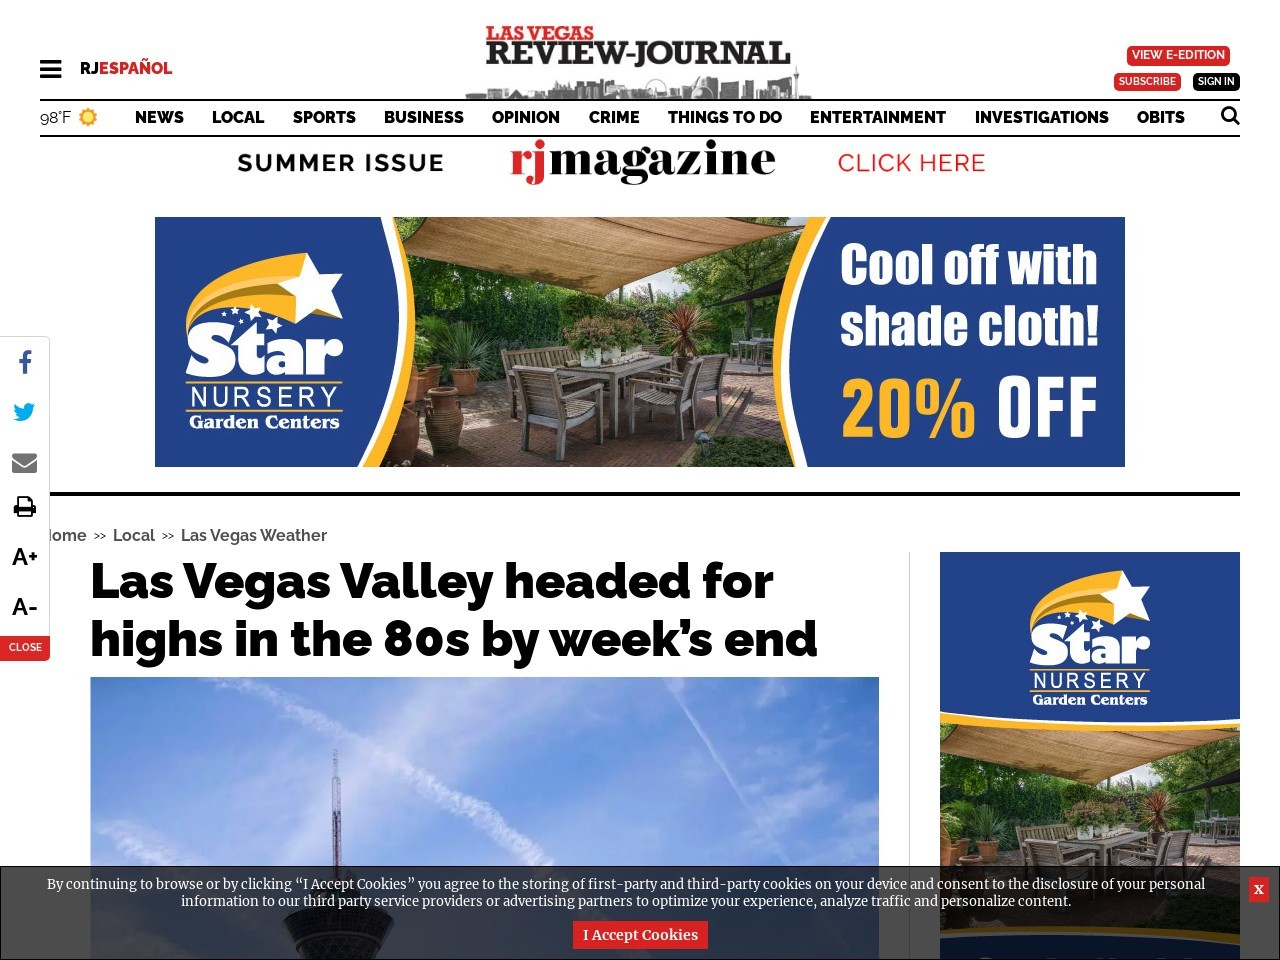 Las Vegas Valley headed for highs in the 80s by week's end